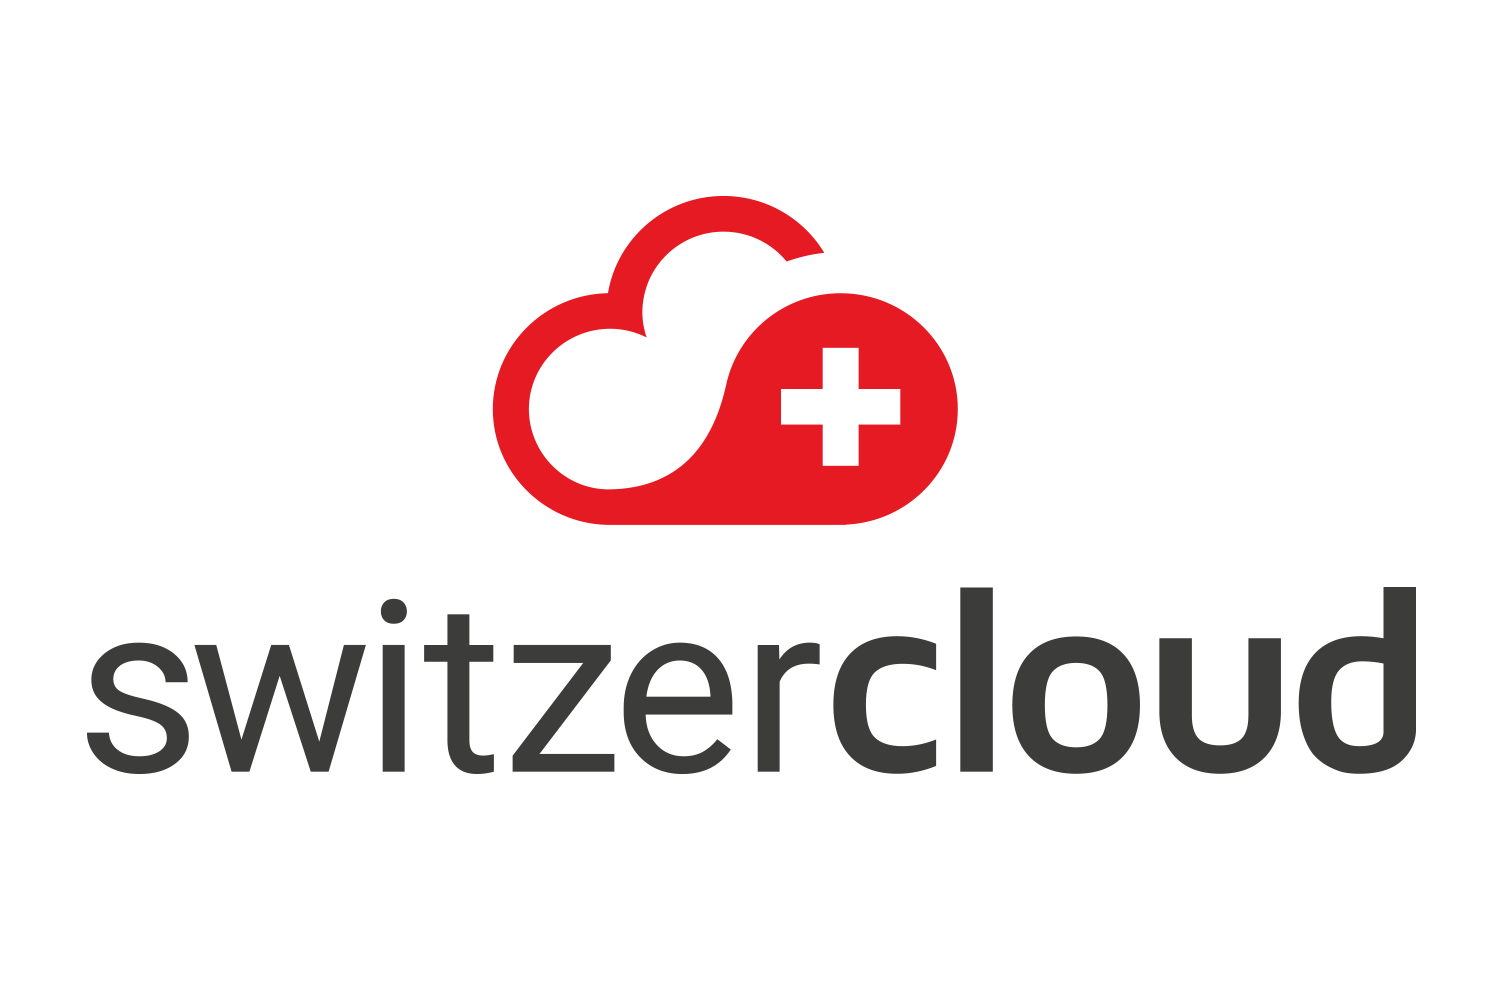 Logo_Switzercloud